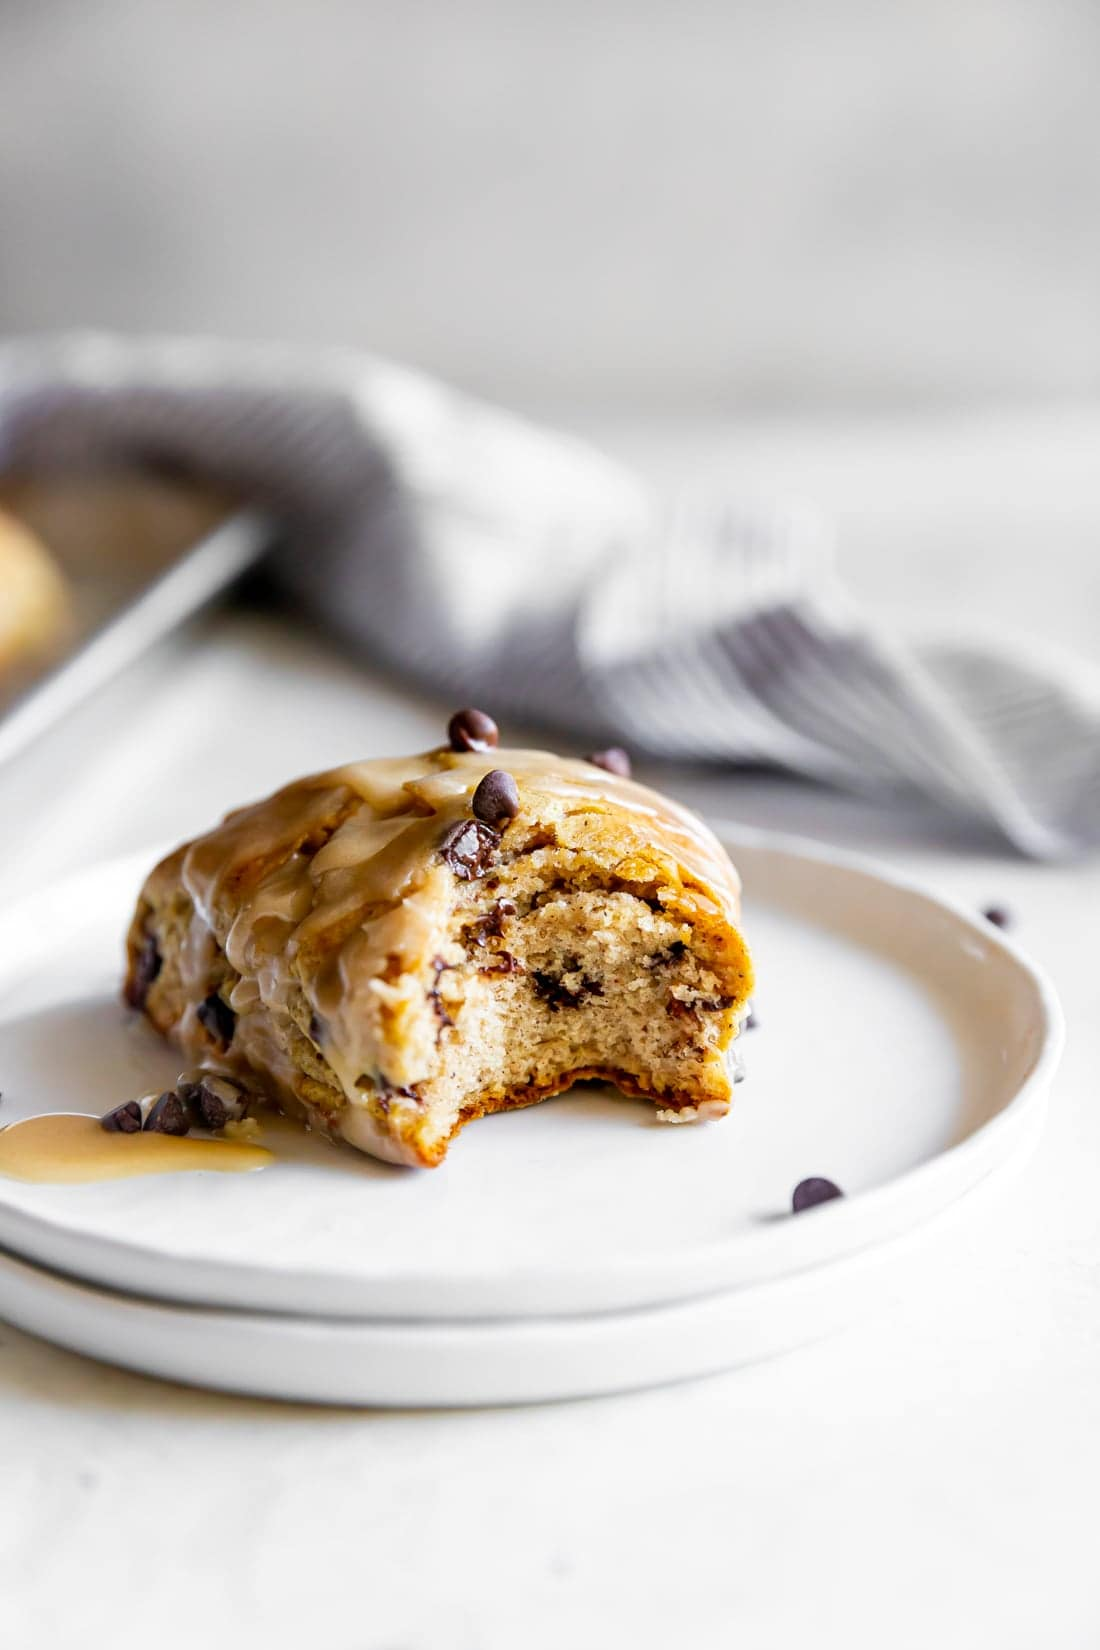 chai chocolate chip scone with espresso glaze with a bite taken out of it